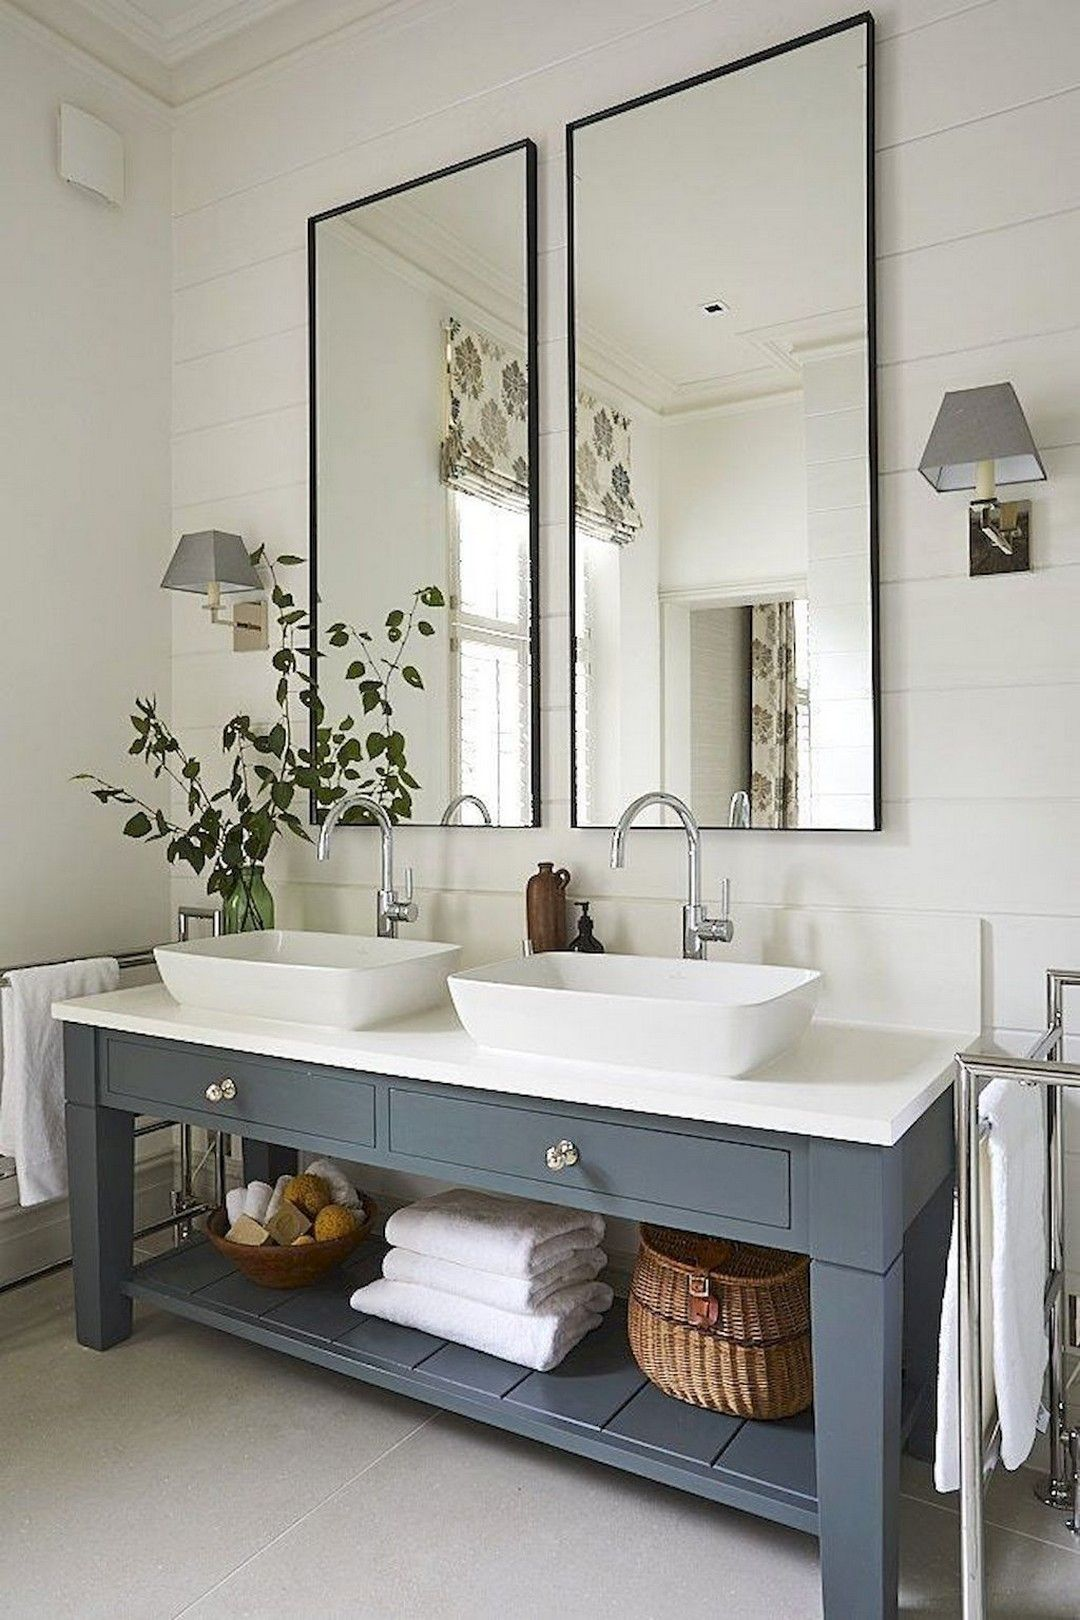 62 Easy Farmhouse Bathroom renovation designs for your bath